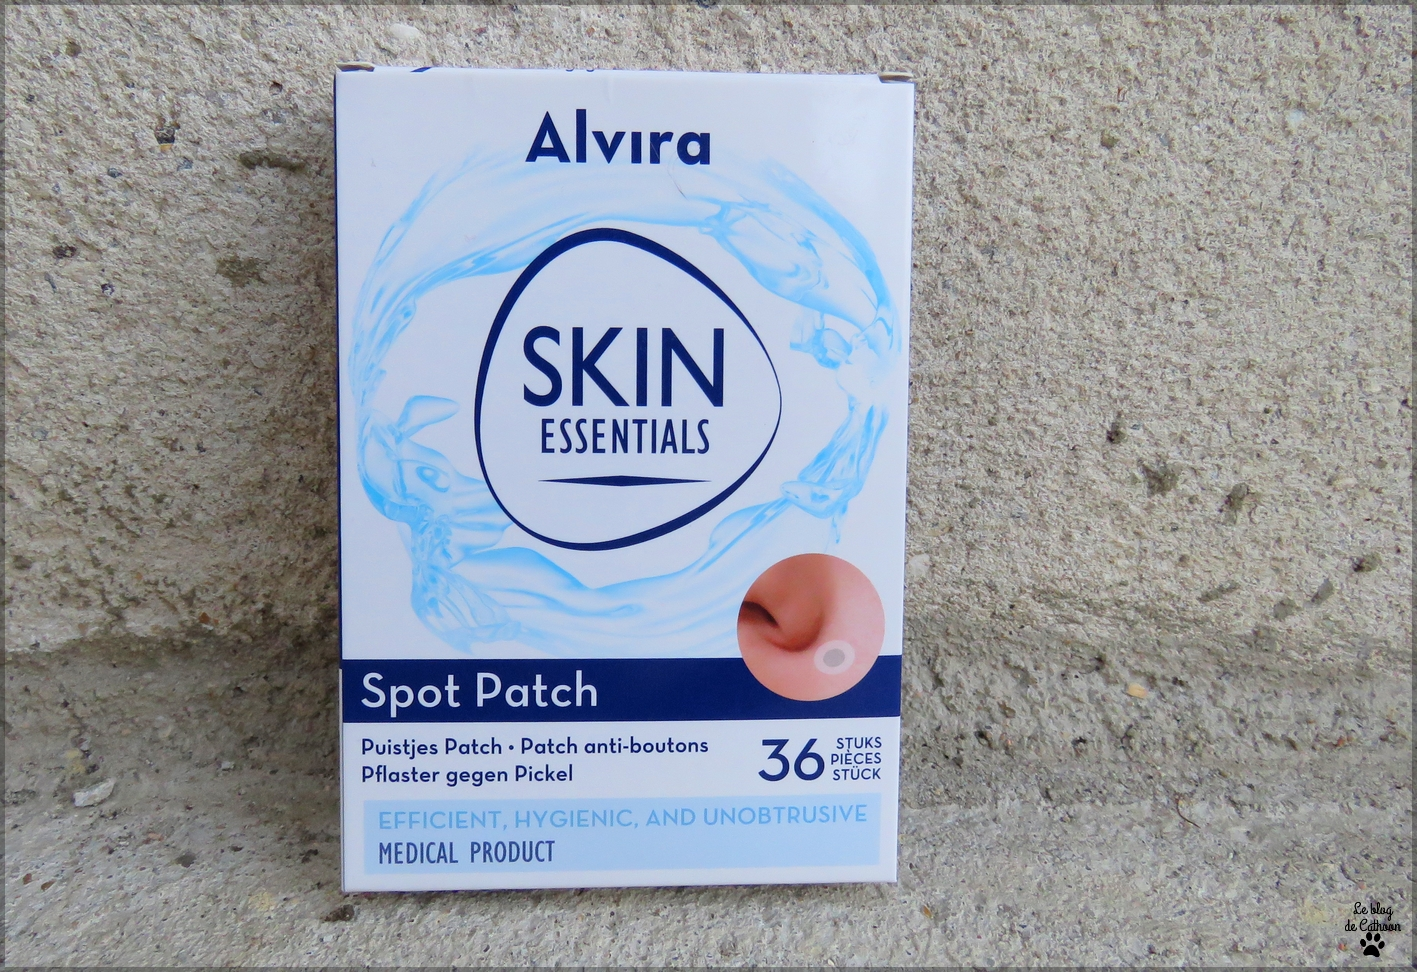 Skin Essentials - Spot Patch - Alvira - Action